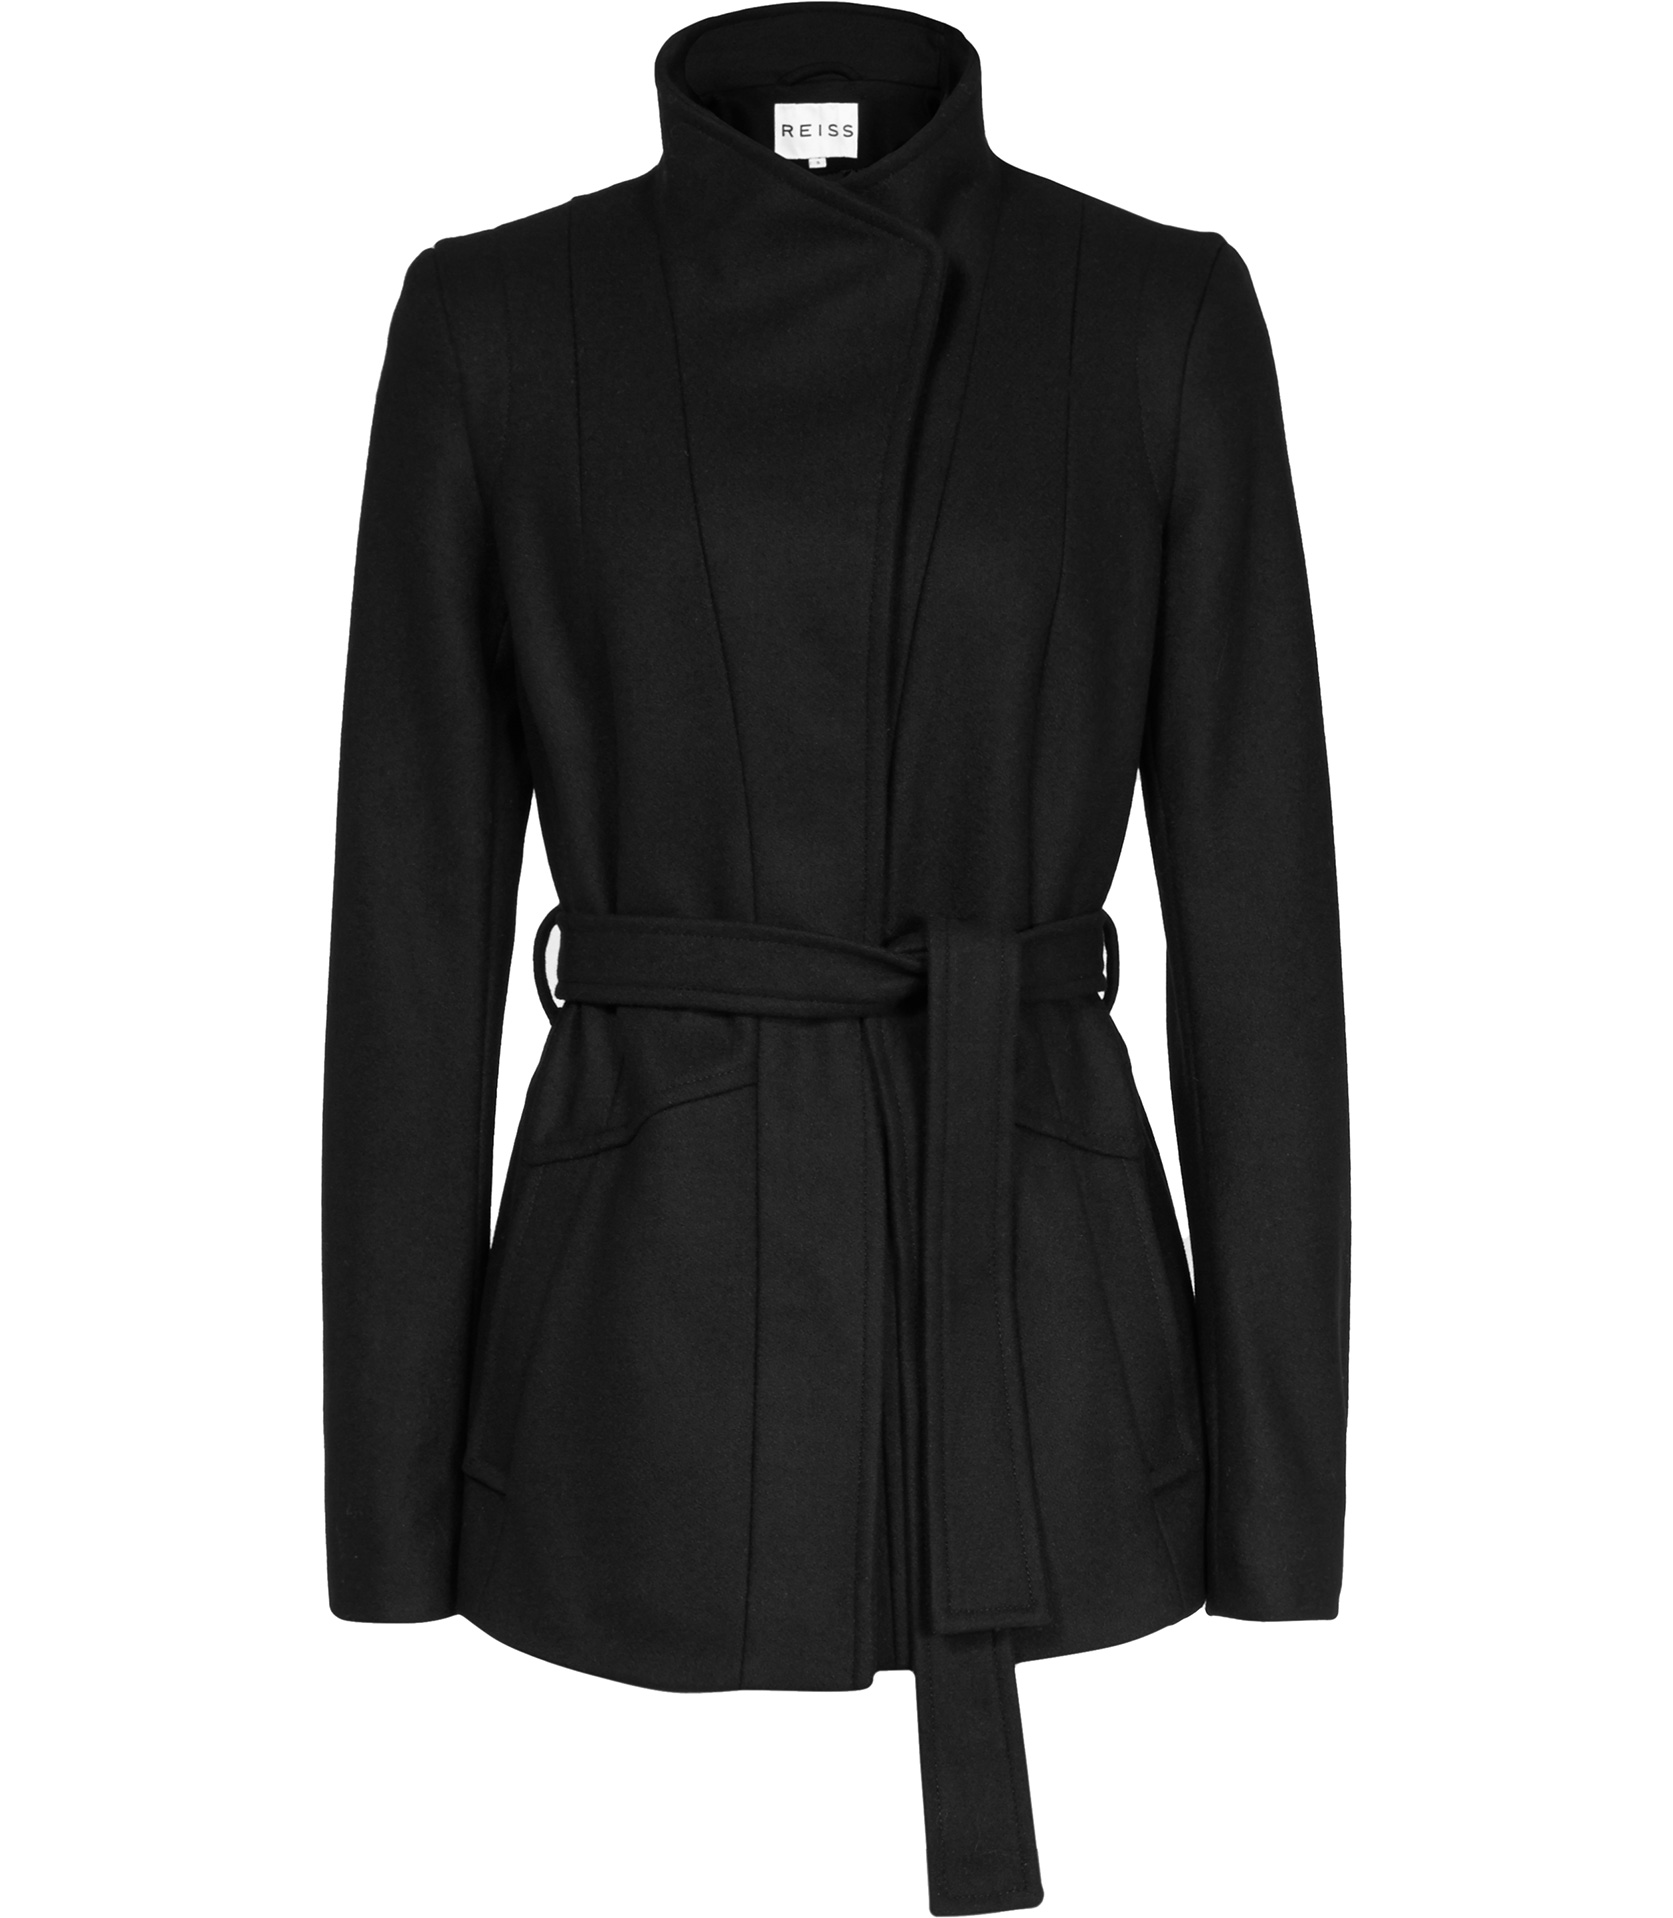 Reiss Chianti Pleat Back Belted Jacket in Black | Lyst